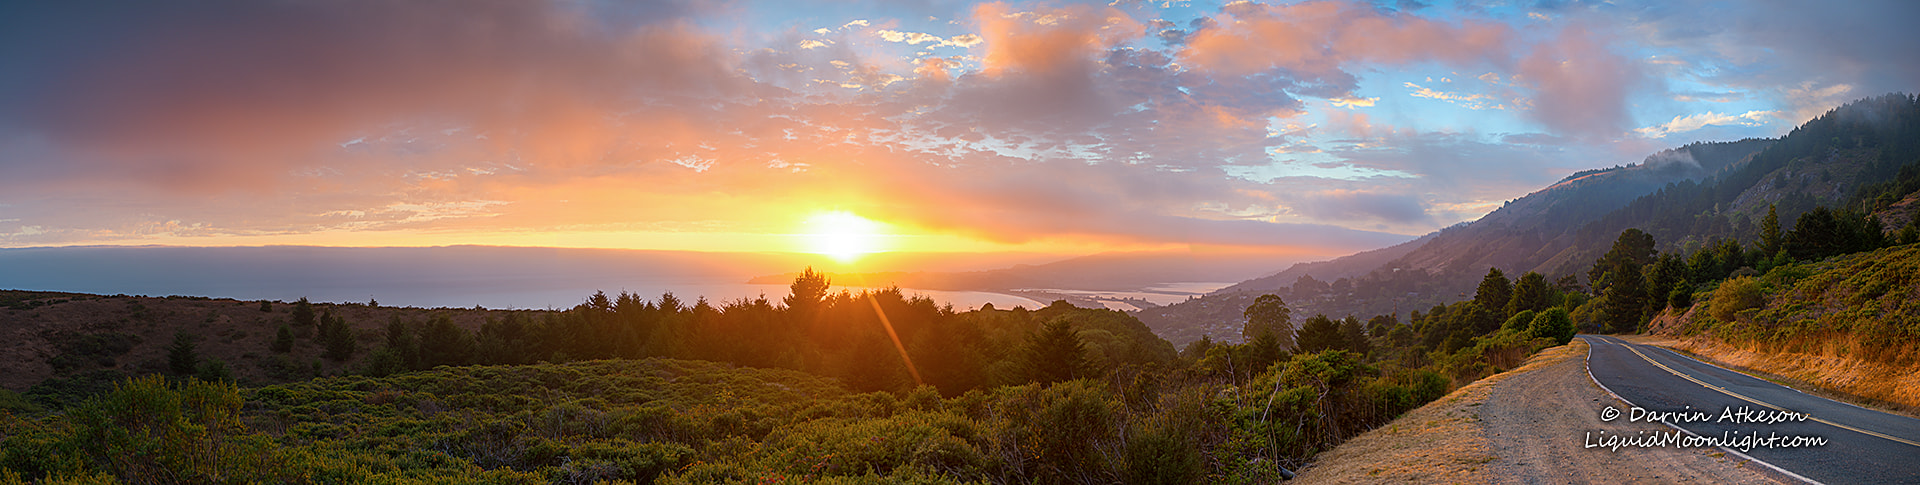 Photograph California Sunset (Large Panorama)  by Darvin Atkeson on 500px